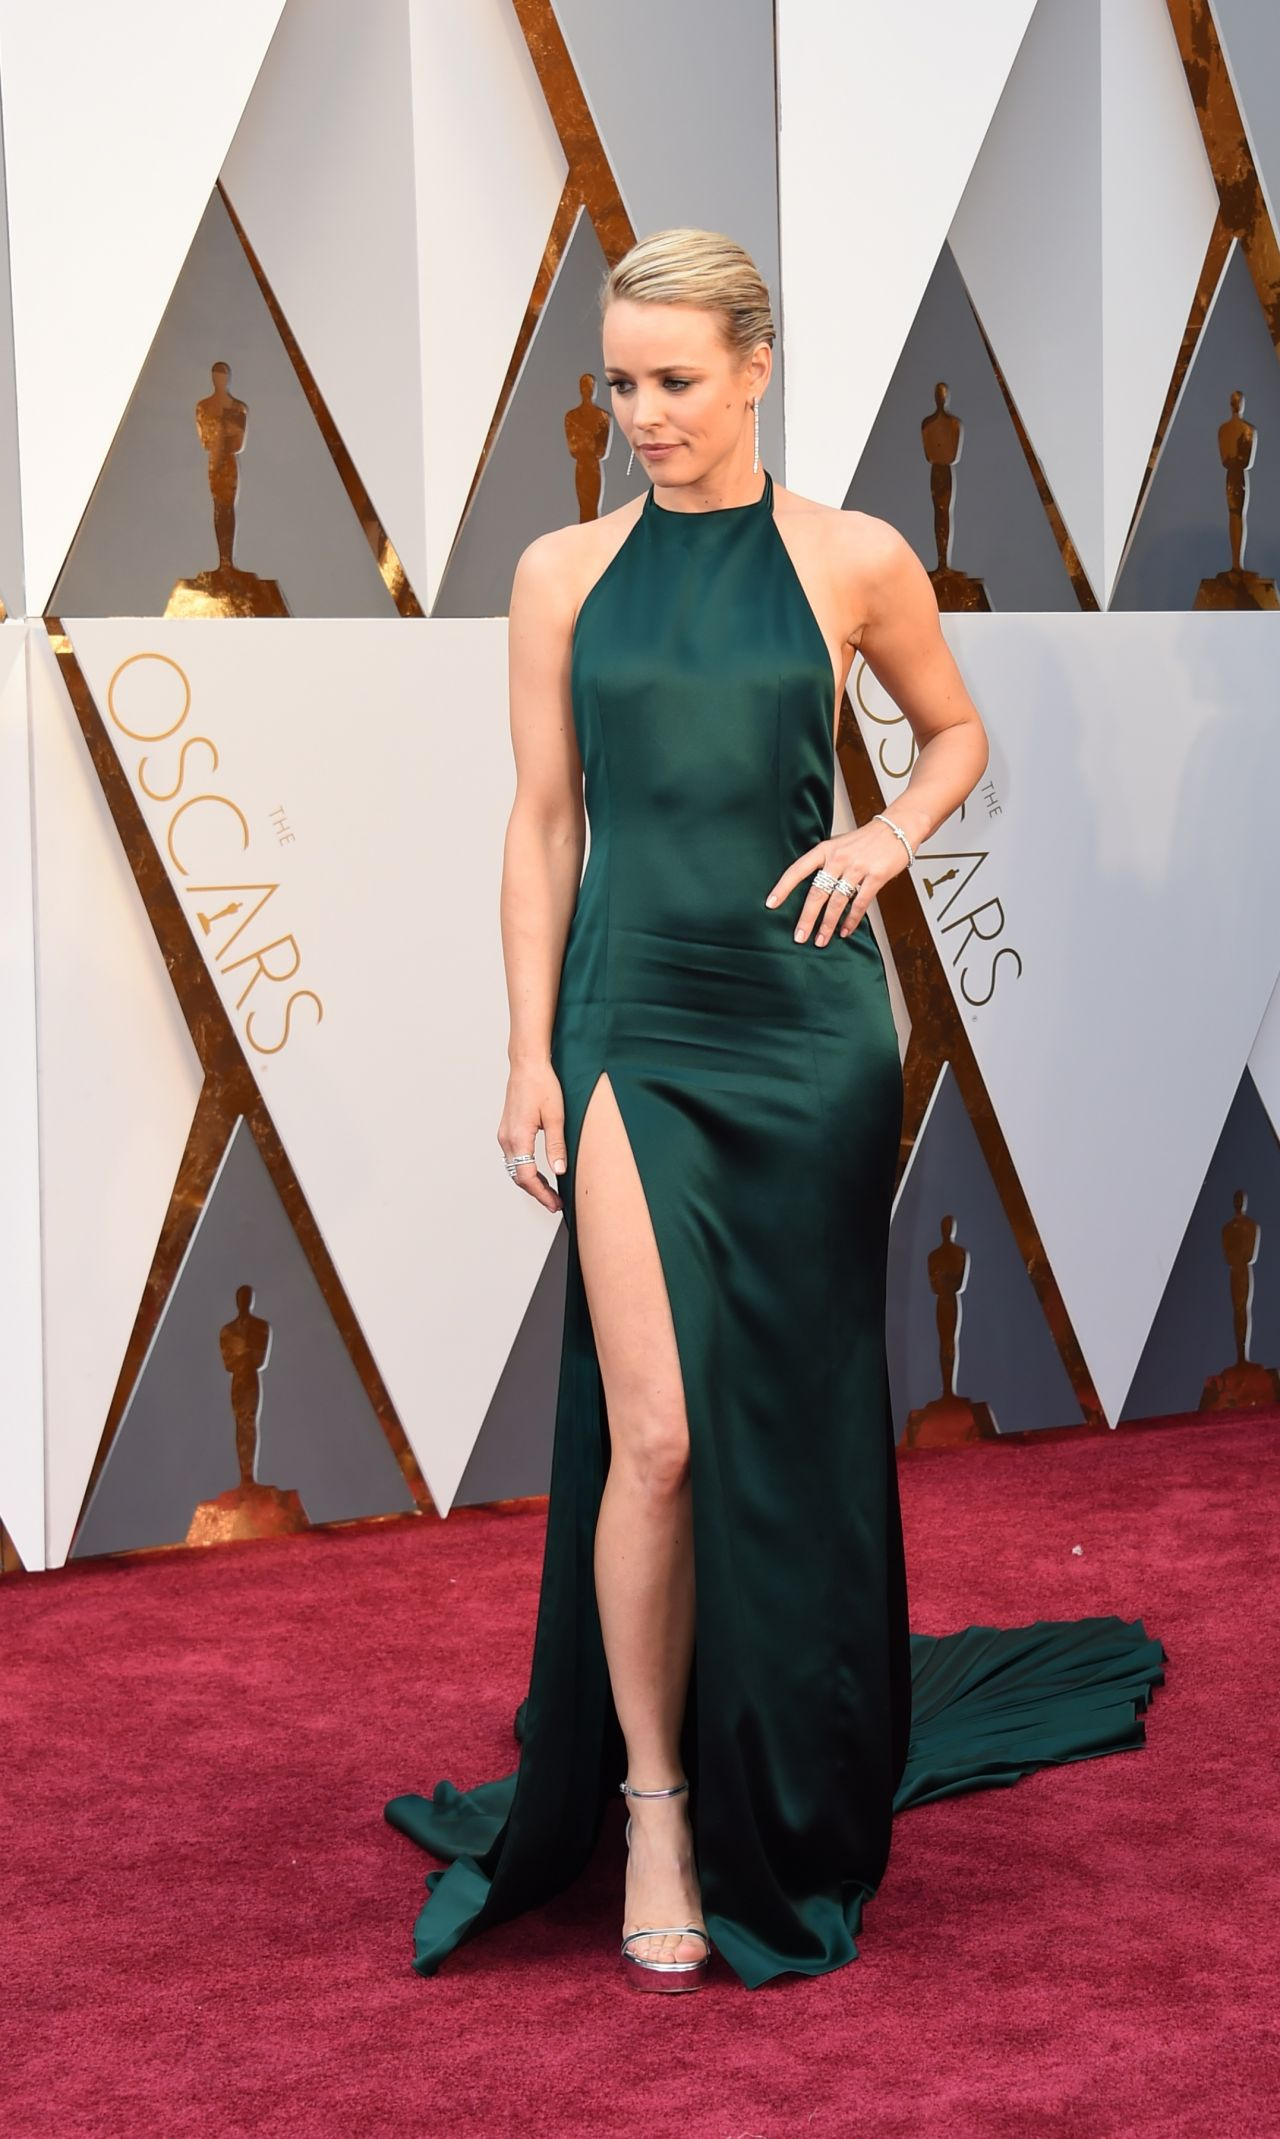 rachel-mcadams-oscars-2016-in-hollywood-ca-2-28-2016-4